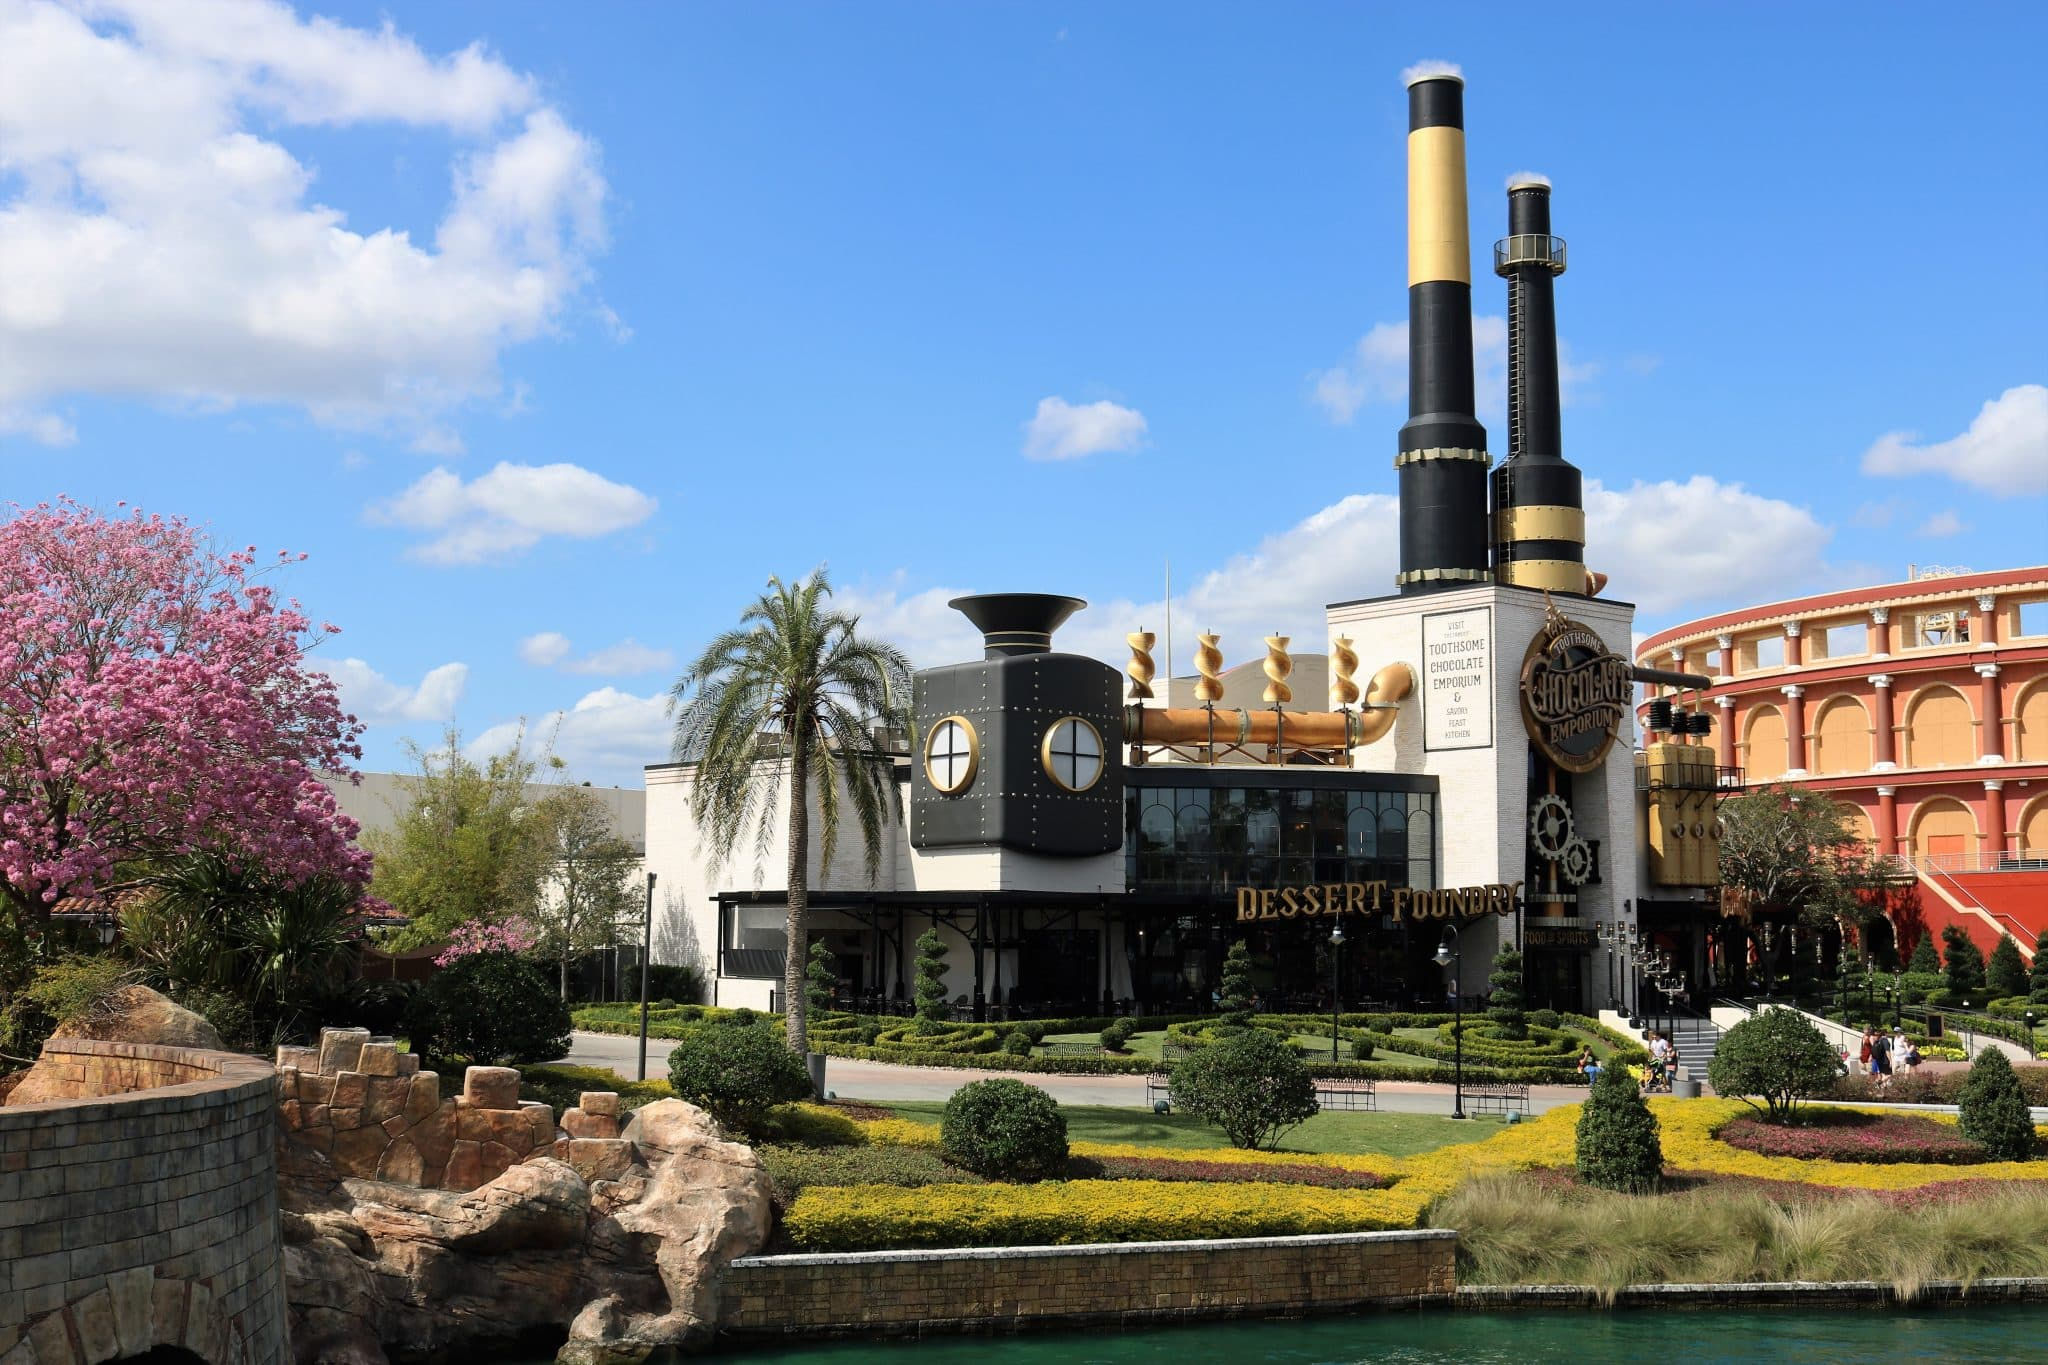 The Toothsome Chocolate Emporium at Universal's City Walk | A Review